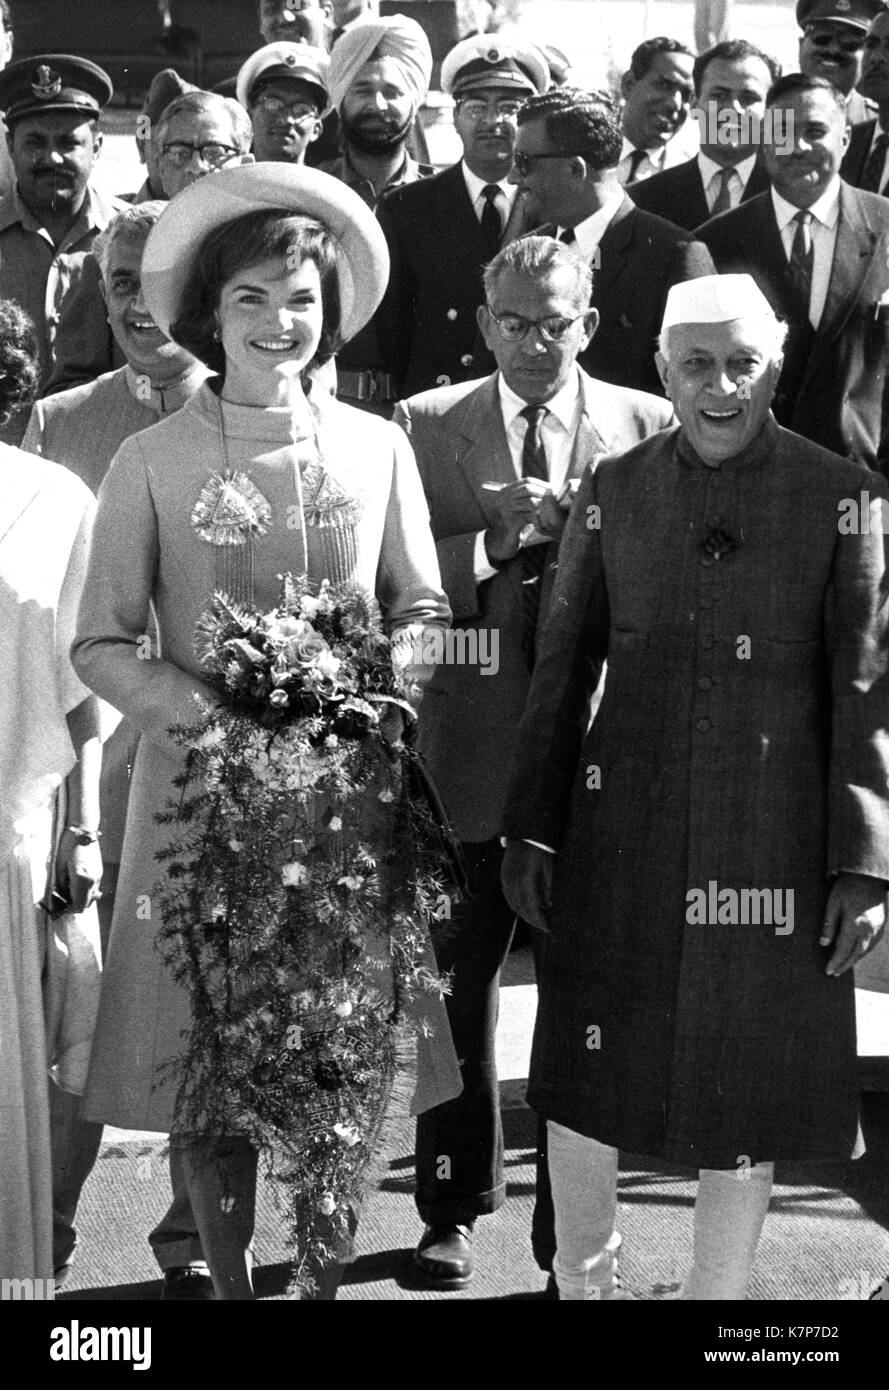 First Lady Jacqueline Kennedy and Prime Minister Jawaharlal Nehru at Palam Airport during Mrs. Kennedy's visit to India, Delhi, India, 03/12/1962. - Stock Image